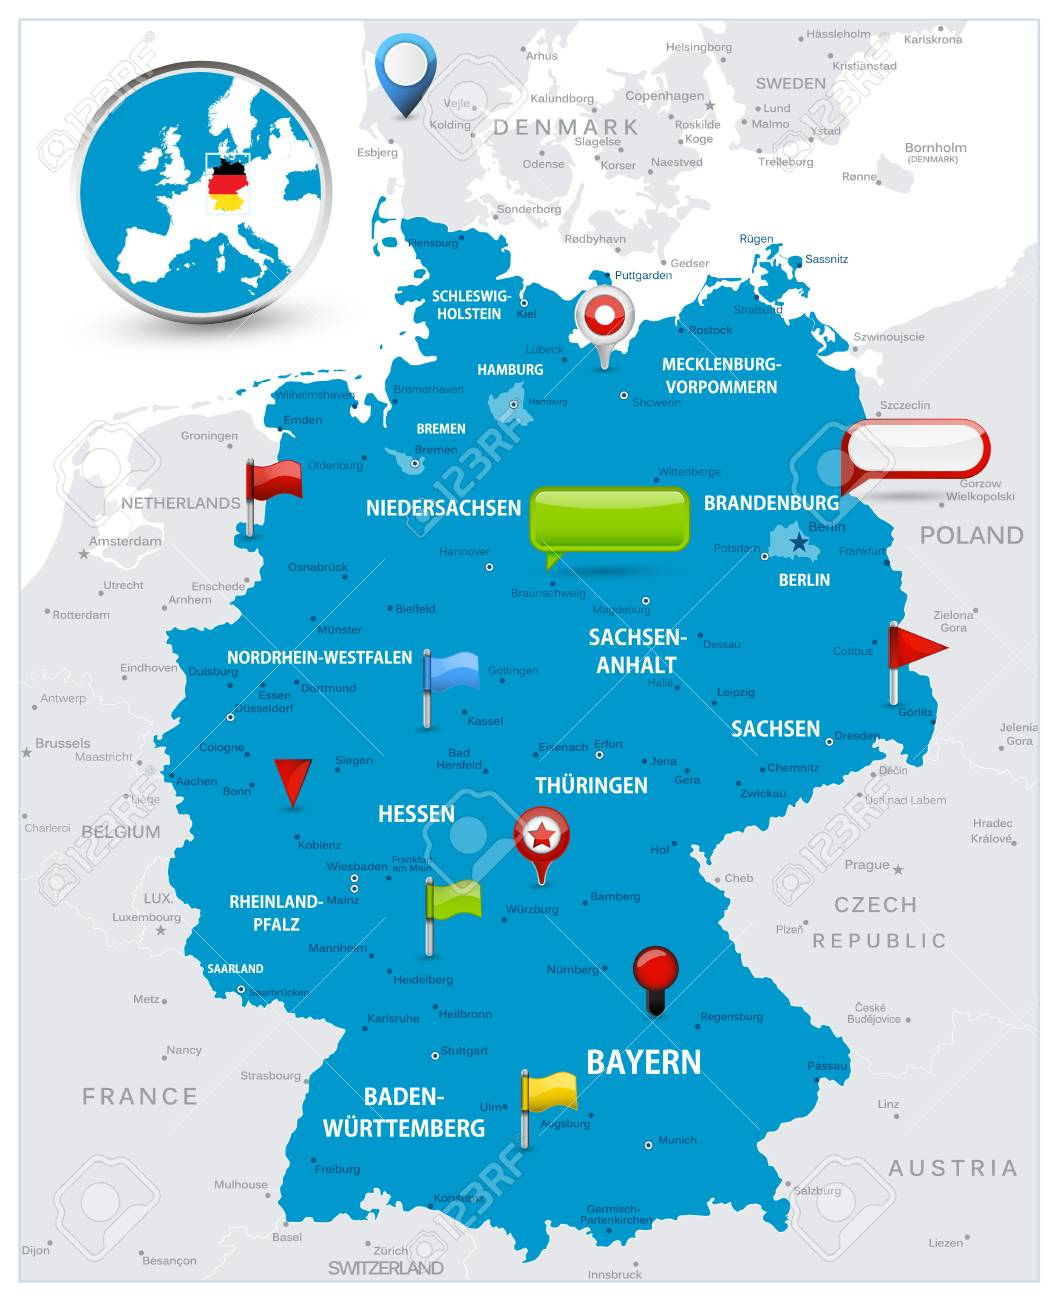 Germany On Map on japan on map, ireland on map, spain on map, italy on map, deutschland on map, egypt on map, denmark on map, greece on map, belgium on map, north korea map, south korea map, volga river on map, united kingdom on map, korean peninsula on map, britain on map, afghanistan on map, easter island on map, illinois on map, iran on map, switzerland on map,